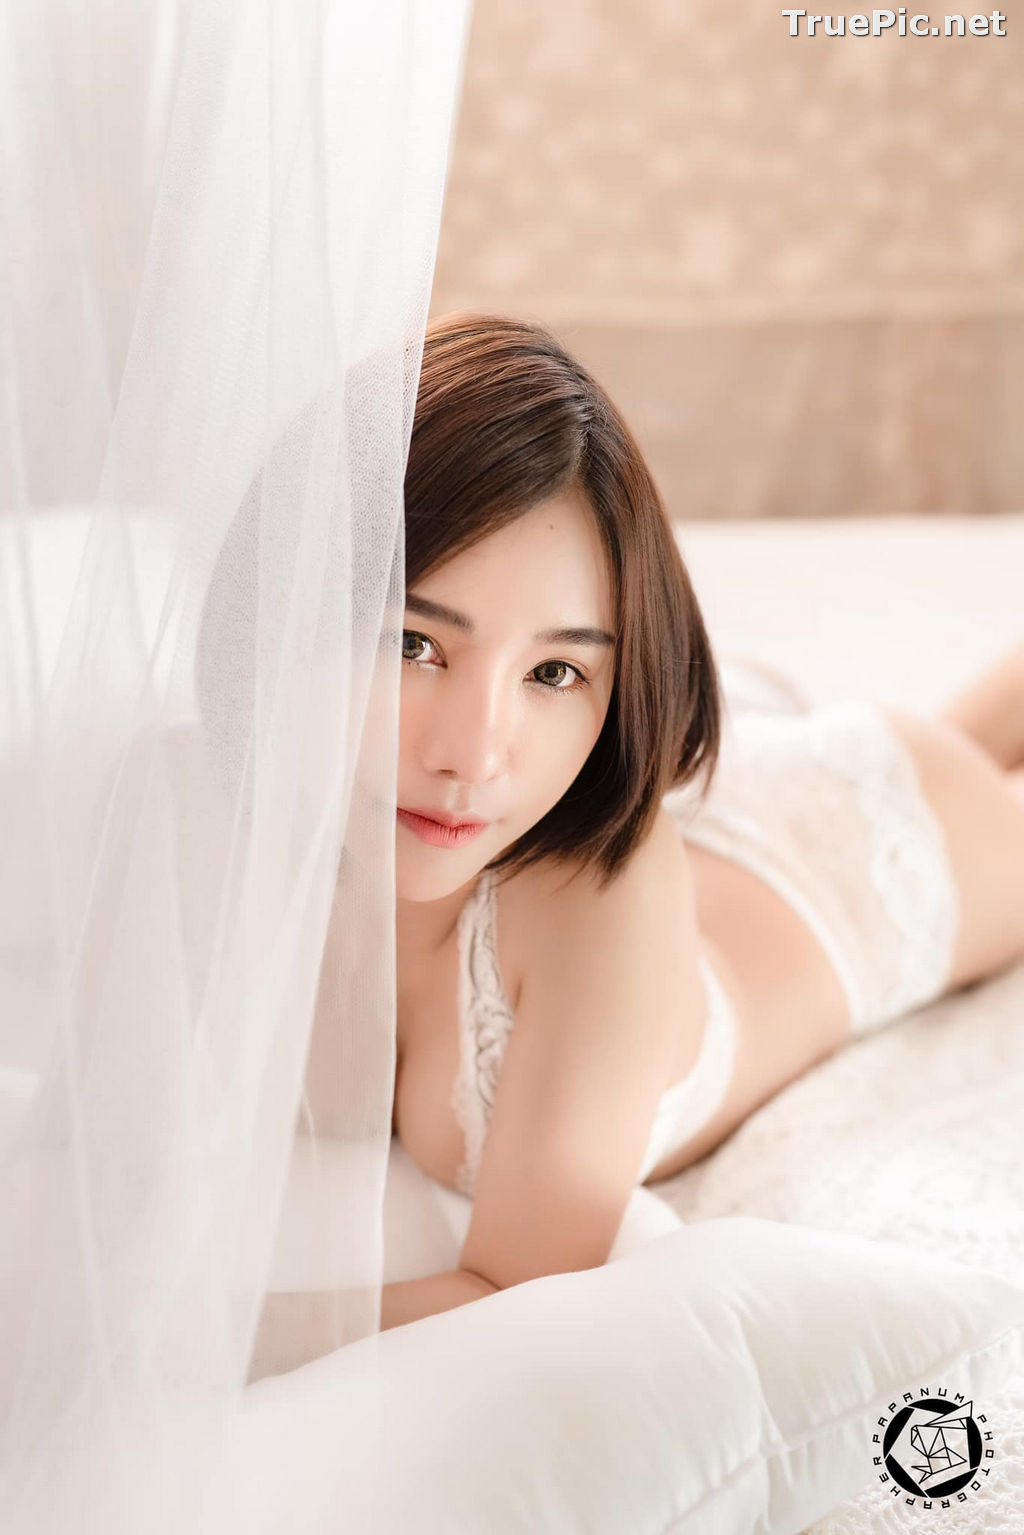 Image Thailand Model - Papoy Kuanpradit - Sexy White Lingerie - TruePic.net - Picture-17